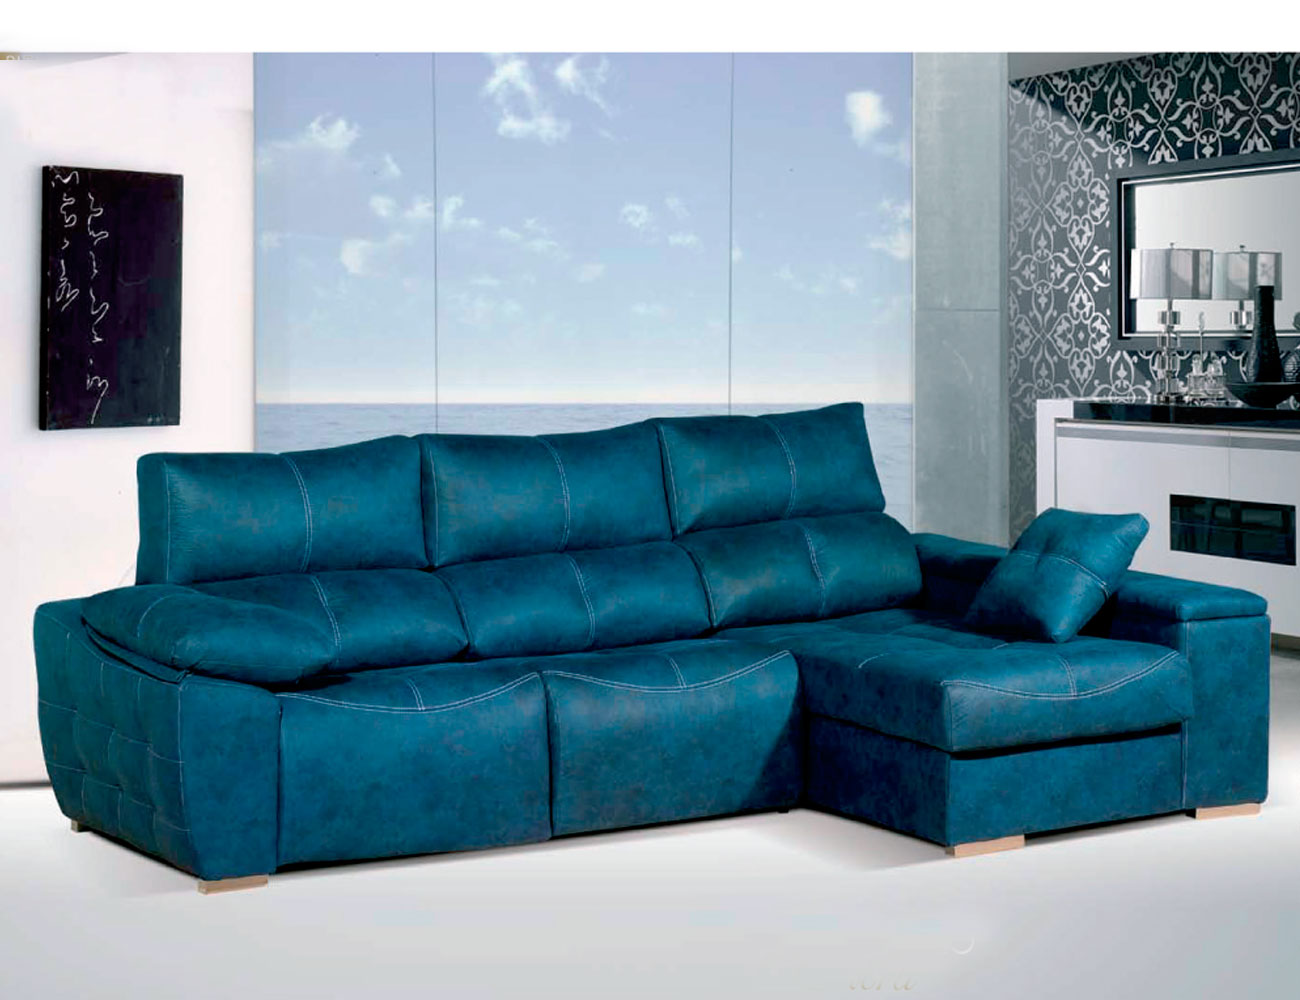 Sofa chaiselongue relax 2 motores anti manchas turquesa23